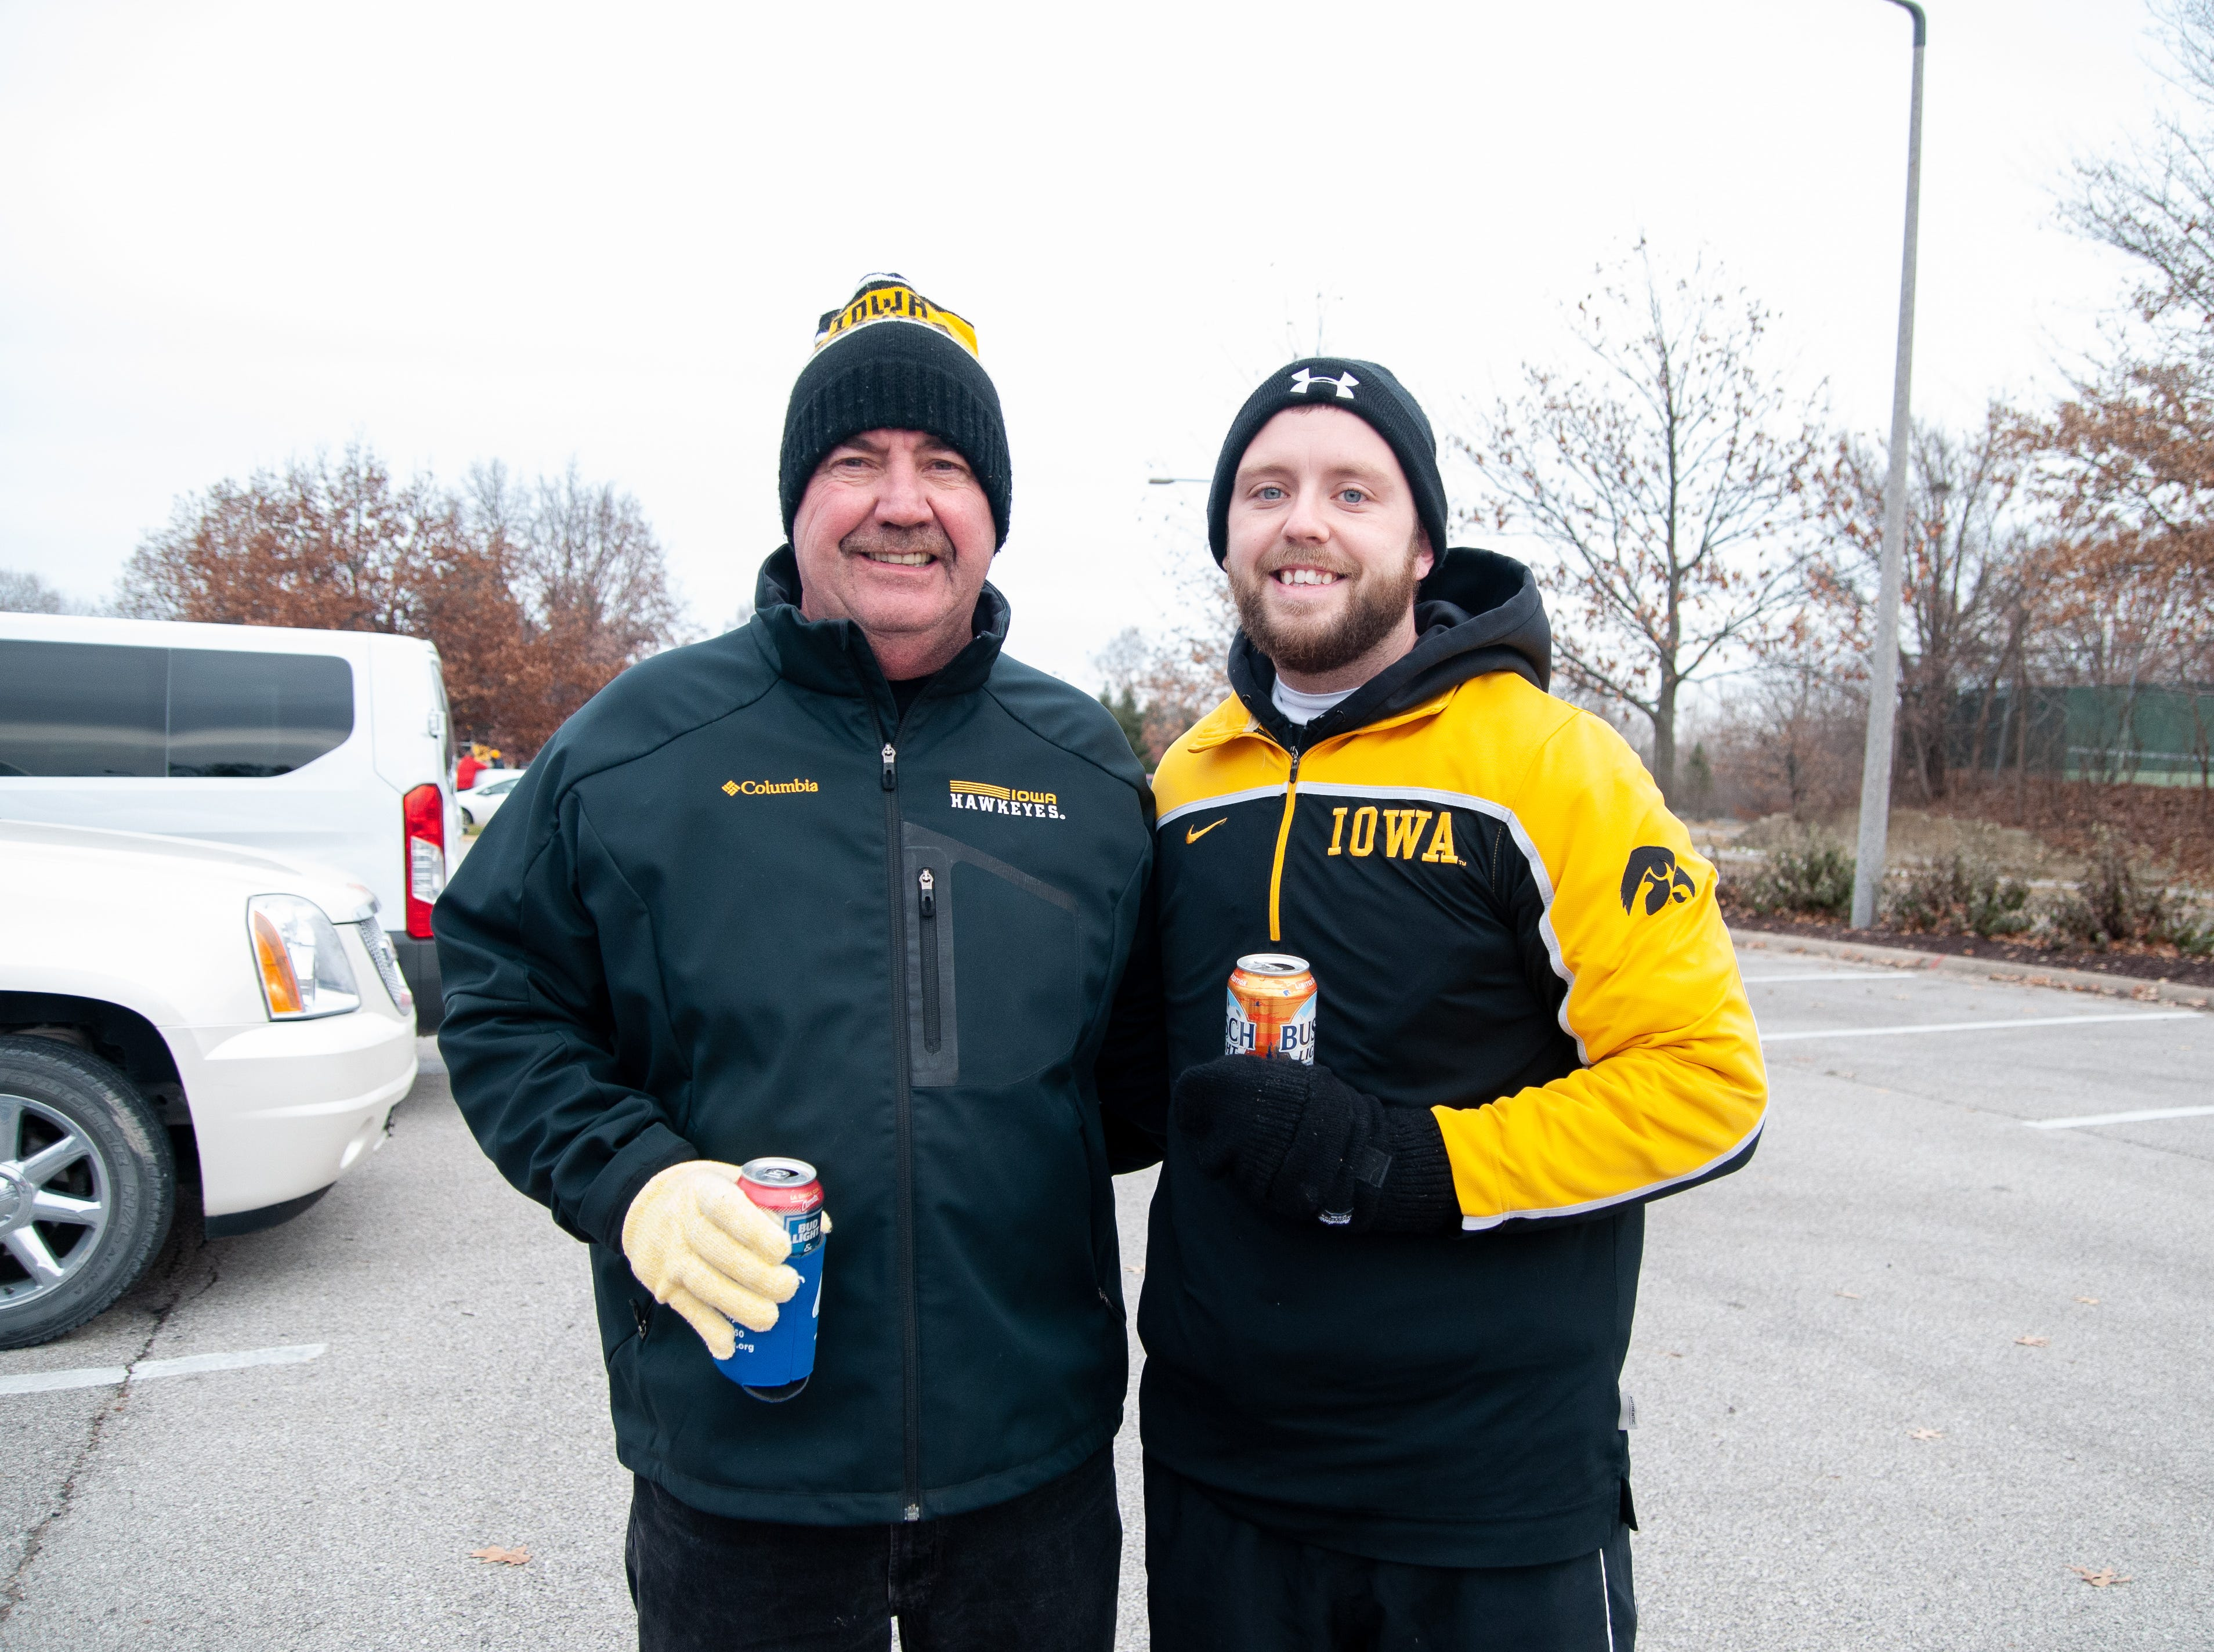 Patrick, left, and Kurt Macavoy, of Denver, Friday, Nov. 23, 2018, while tailgating before the Iowa game against Nebraska in Iowa City.